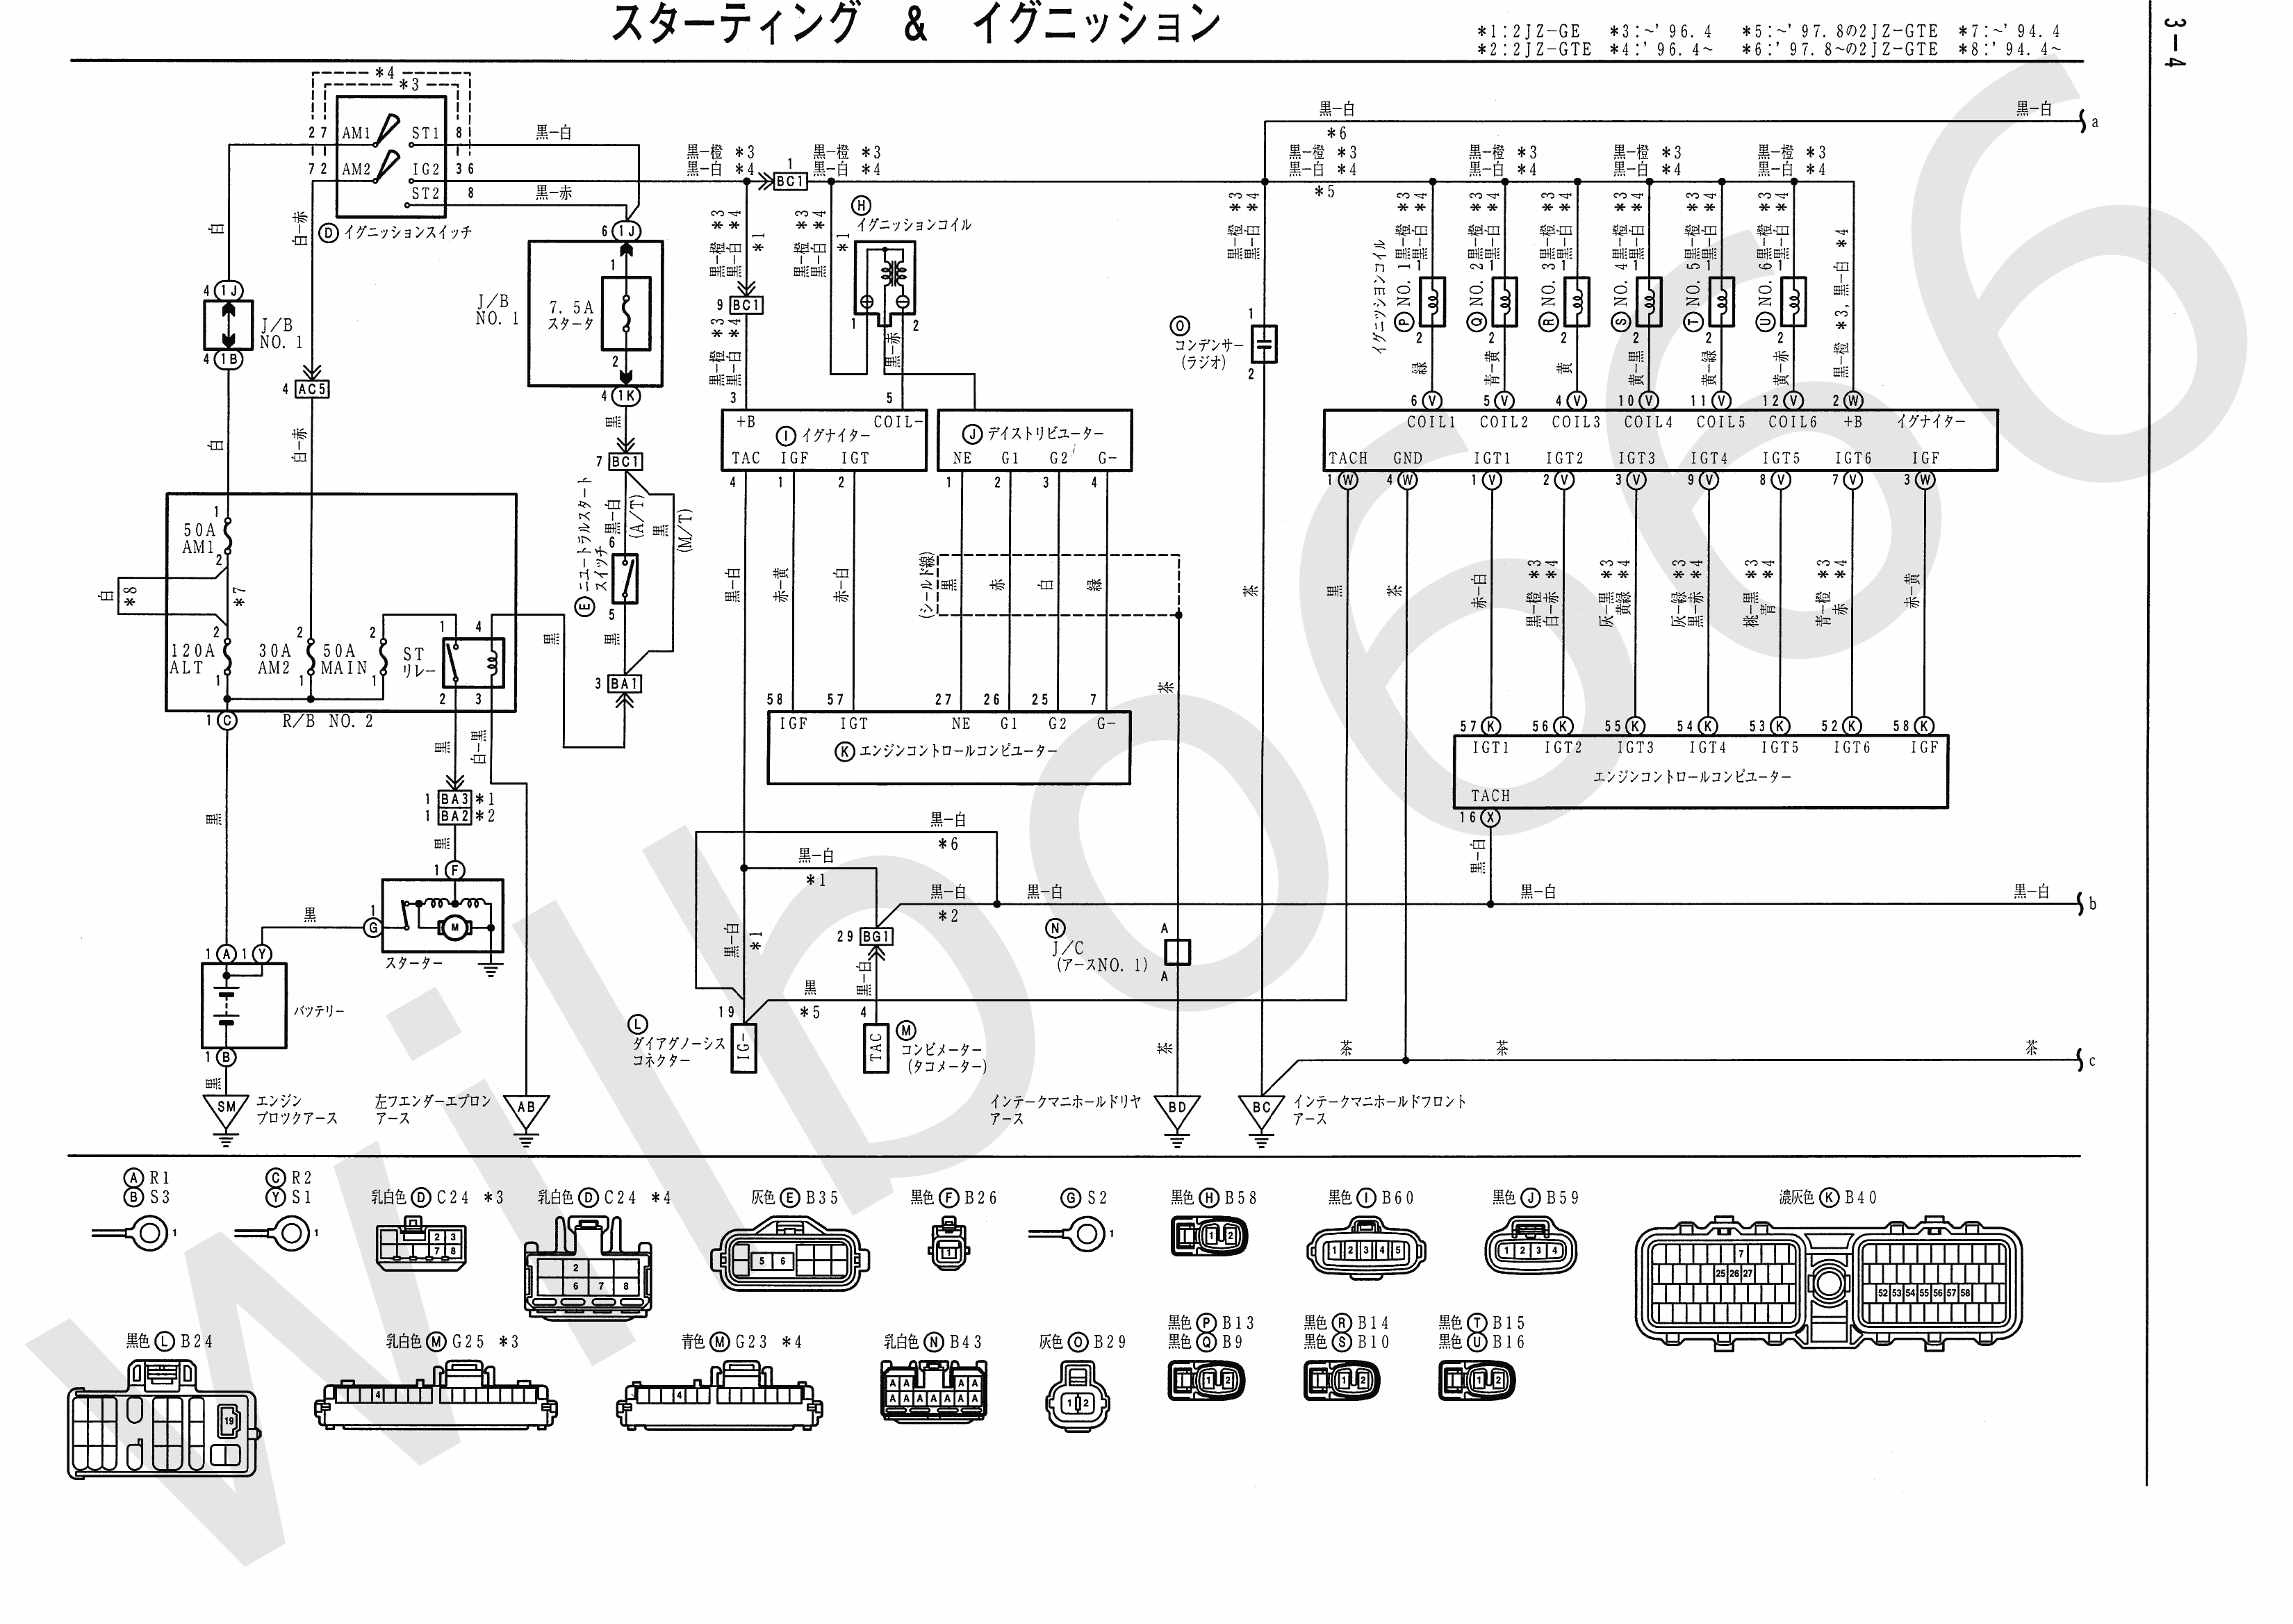 JZA80 Electrical Wiring Diagram 6742505 3 4 wilbo666 2jz ge jza80 supra engine wiring toyota highlander ecu wiring diagram at sewacar.co